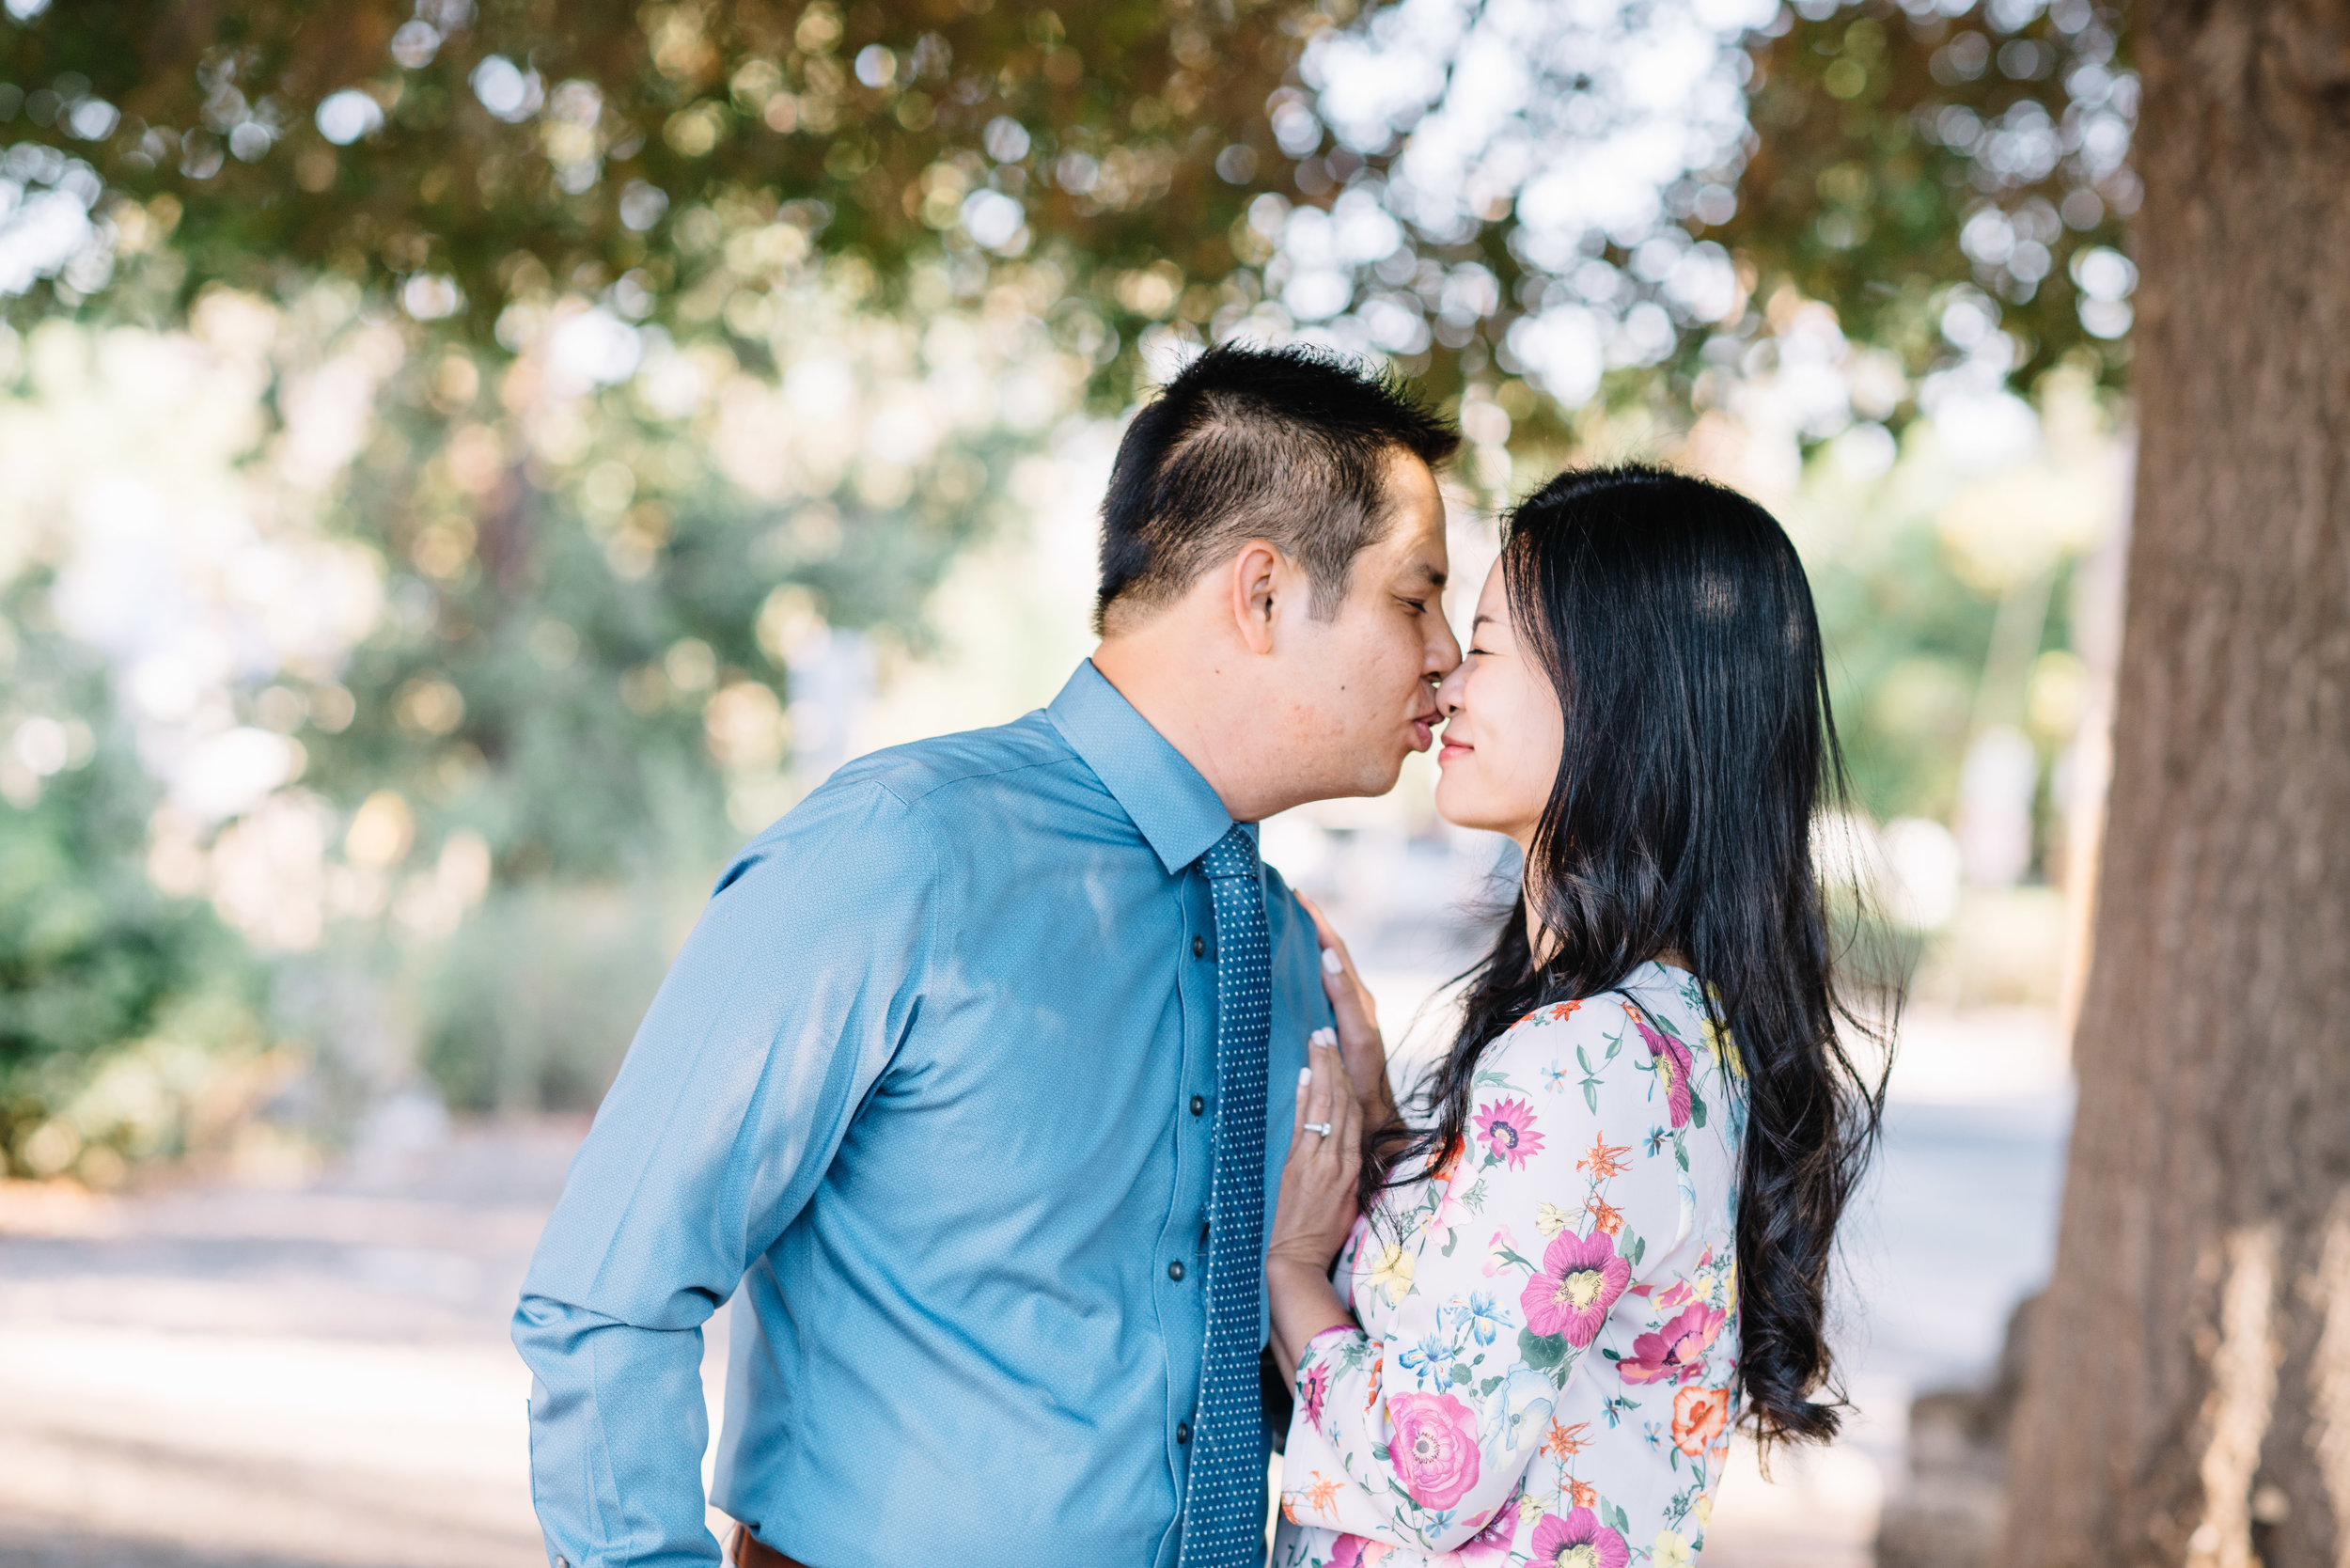 jennifer-jayn-photography-san-juan-capistrano-engagement-session-01.jpg